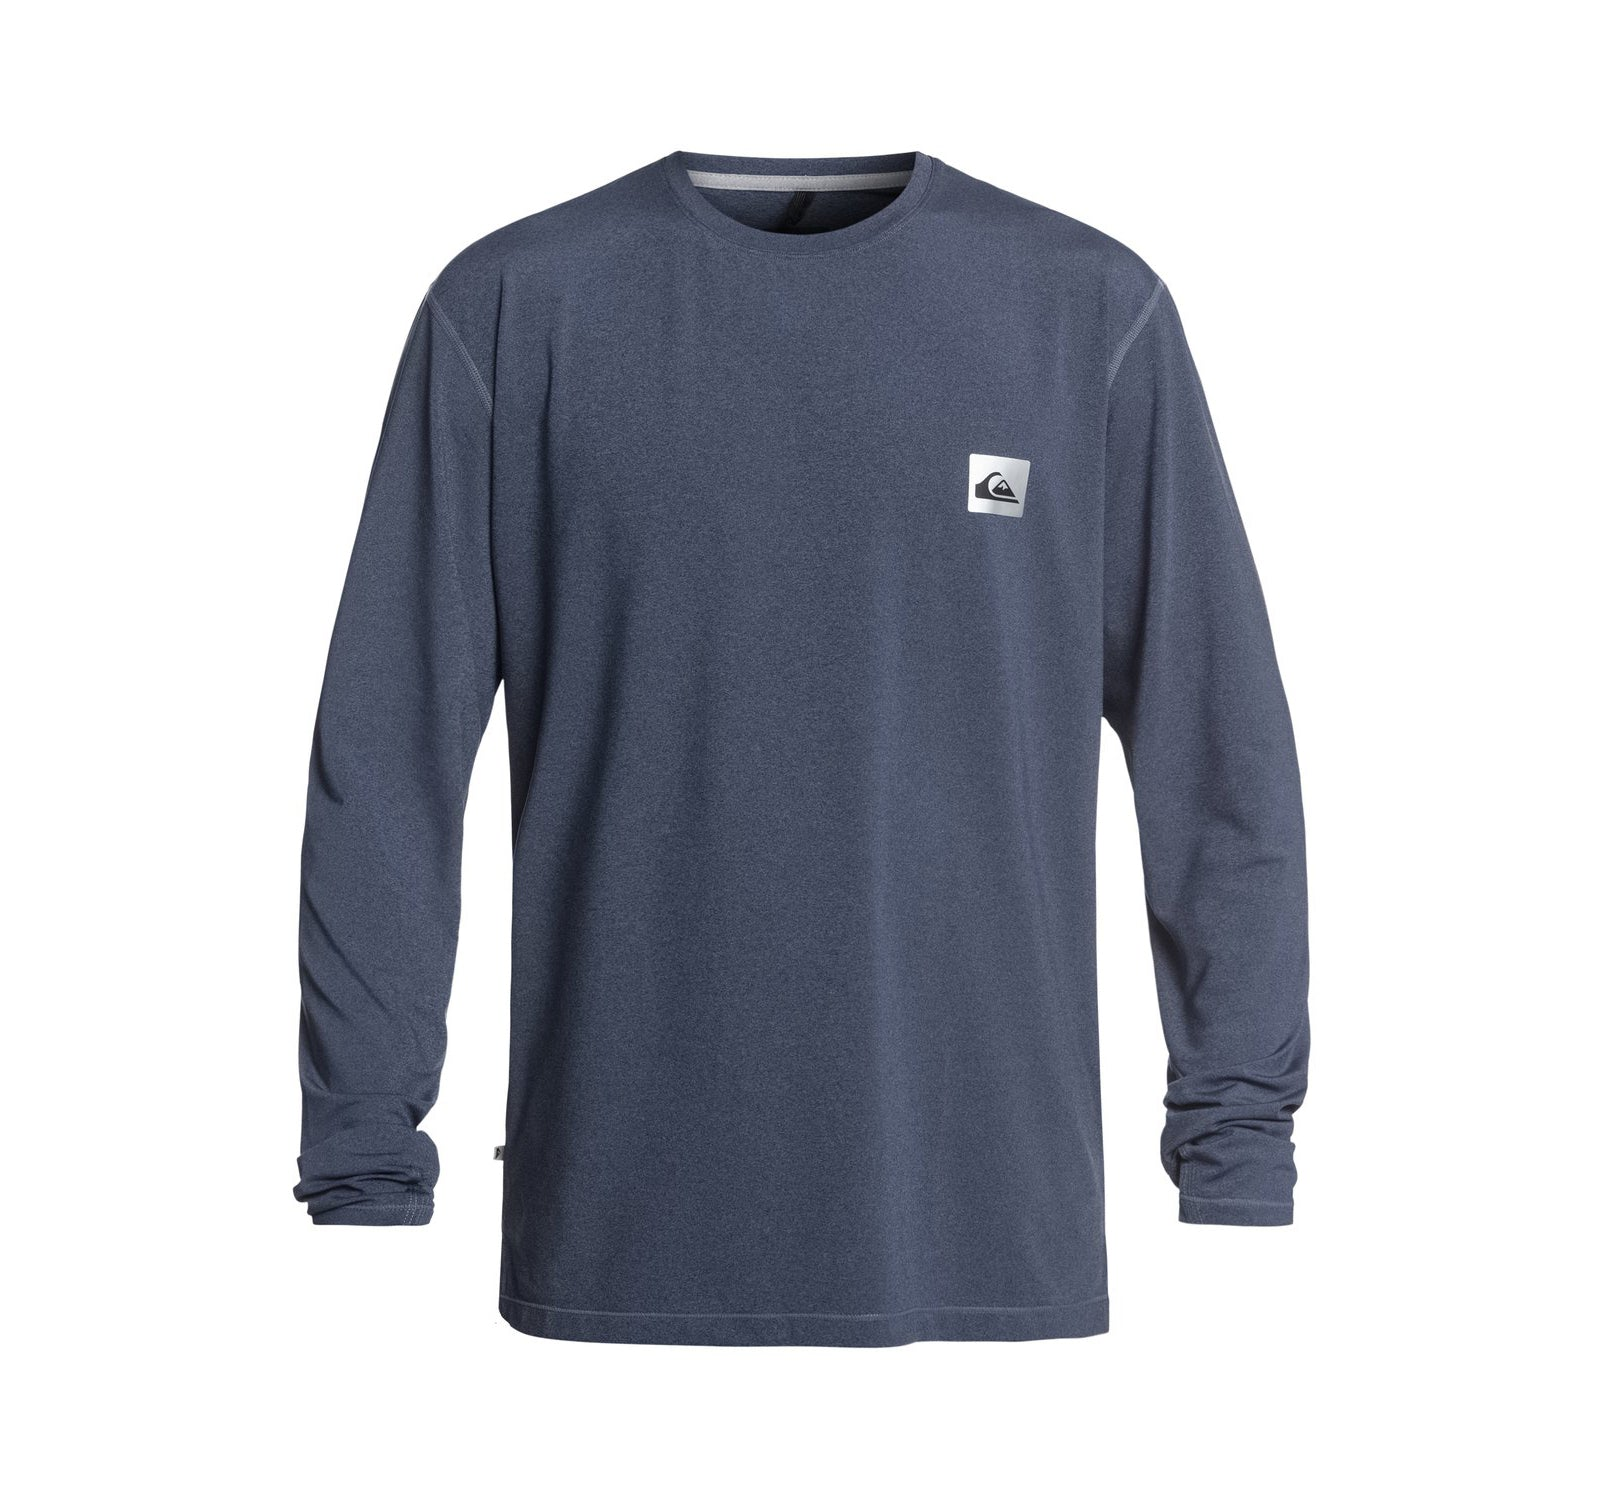 Quiksilver Salty Dog Men's L/S Rashguard